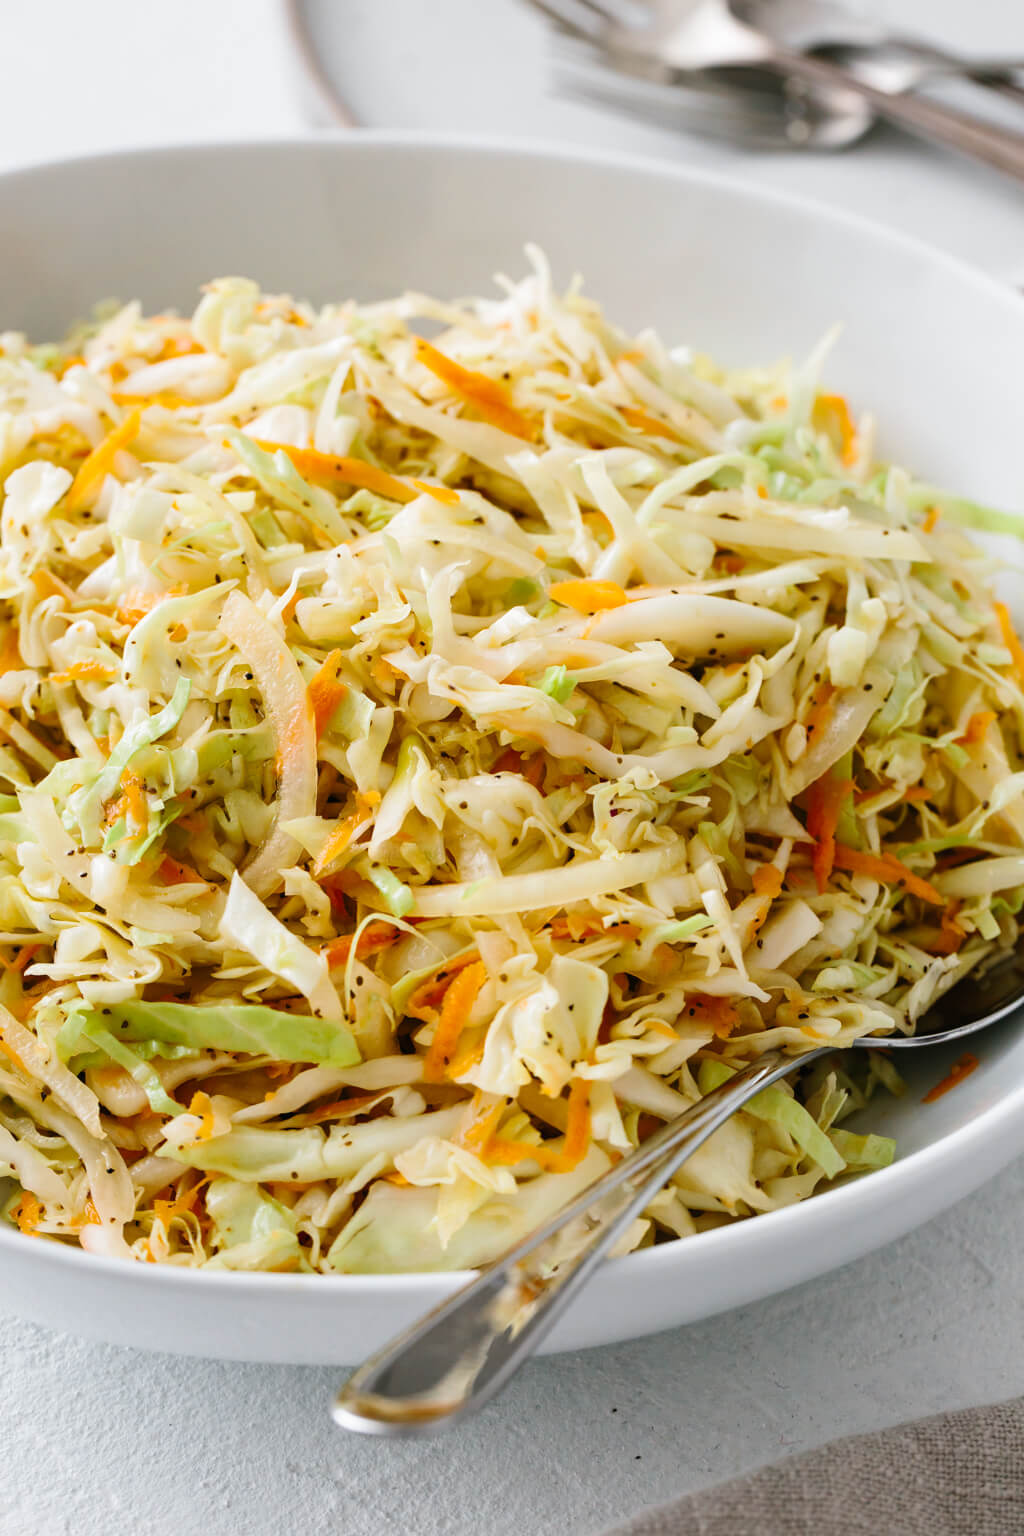 Vinegar coleslaw in a white bowl.